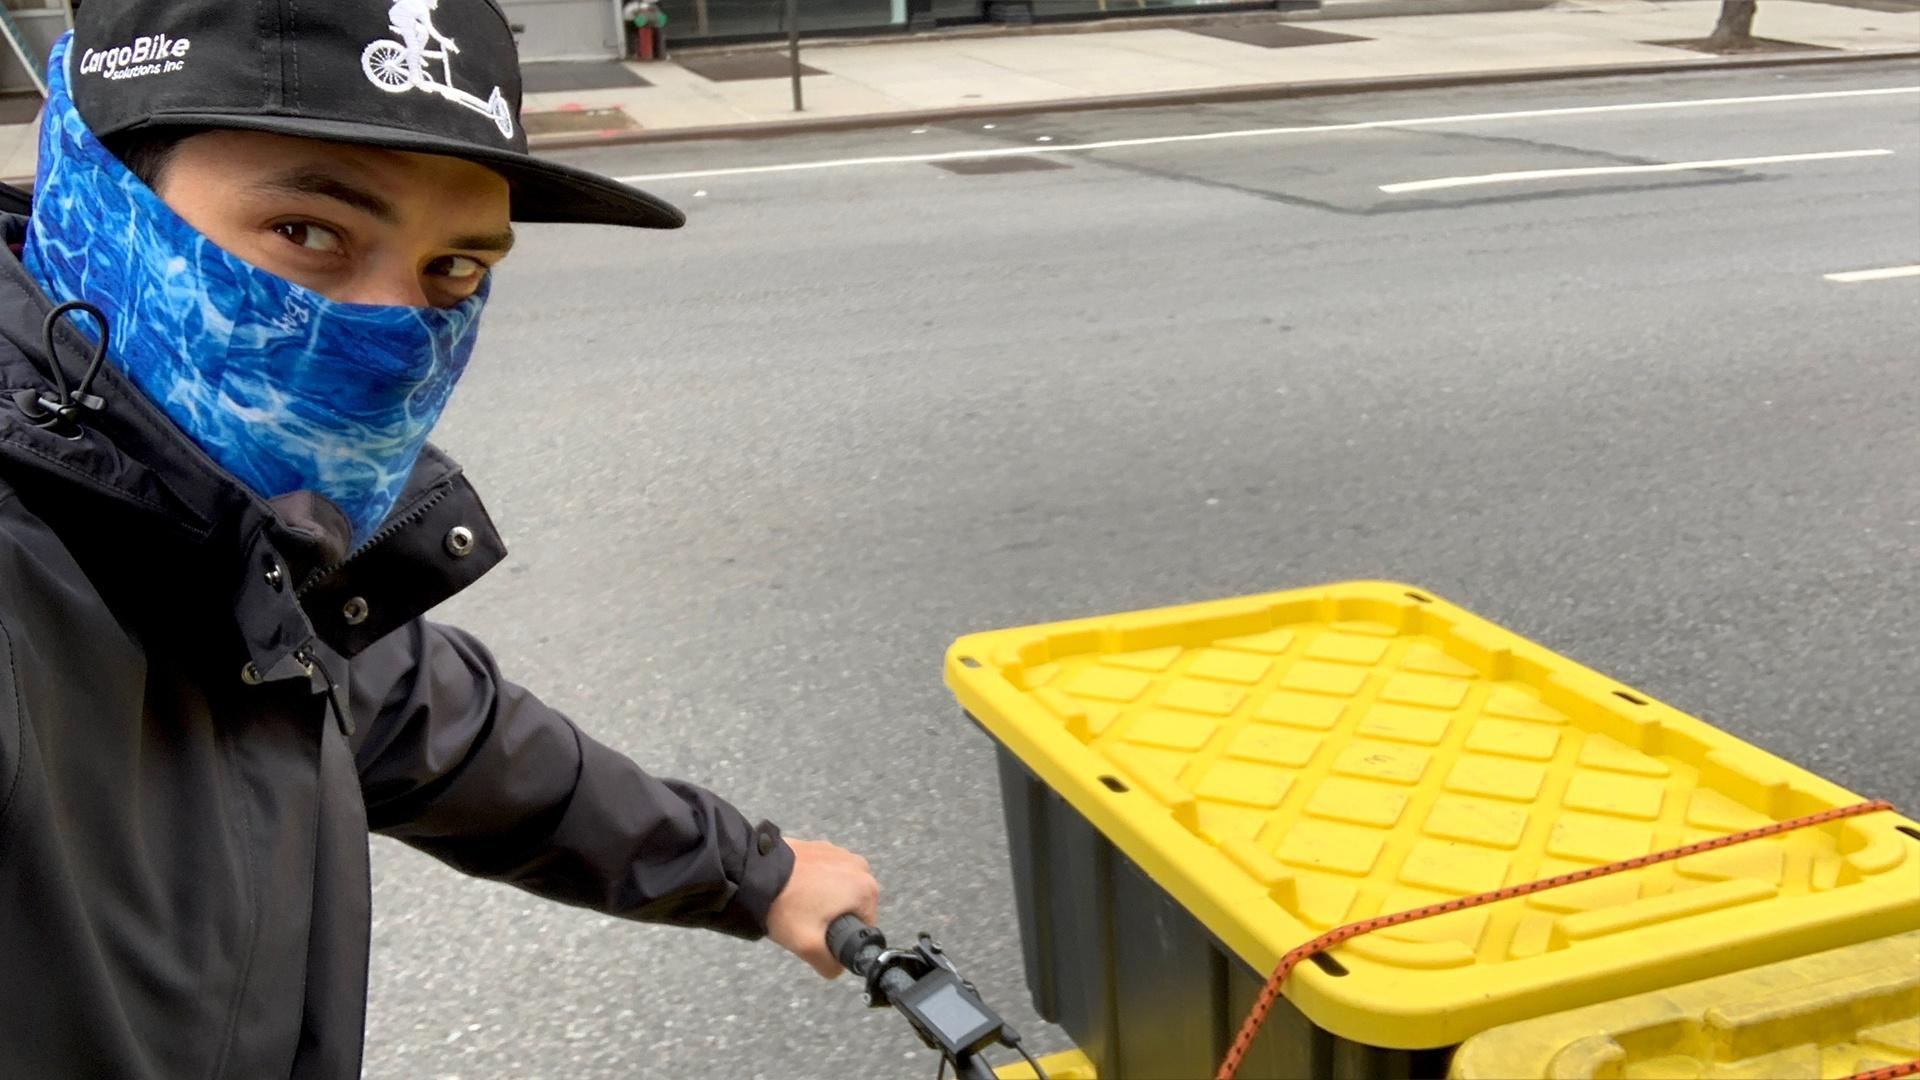 Diego - in a mask rides his courier bike